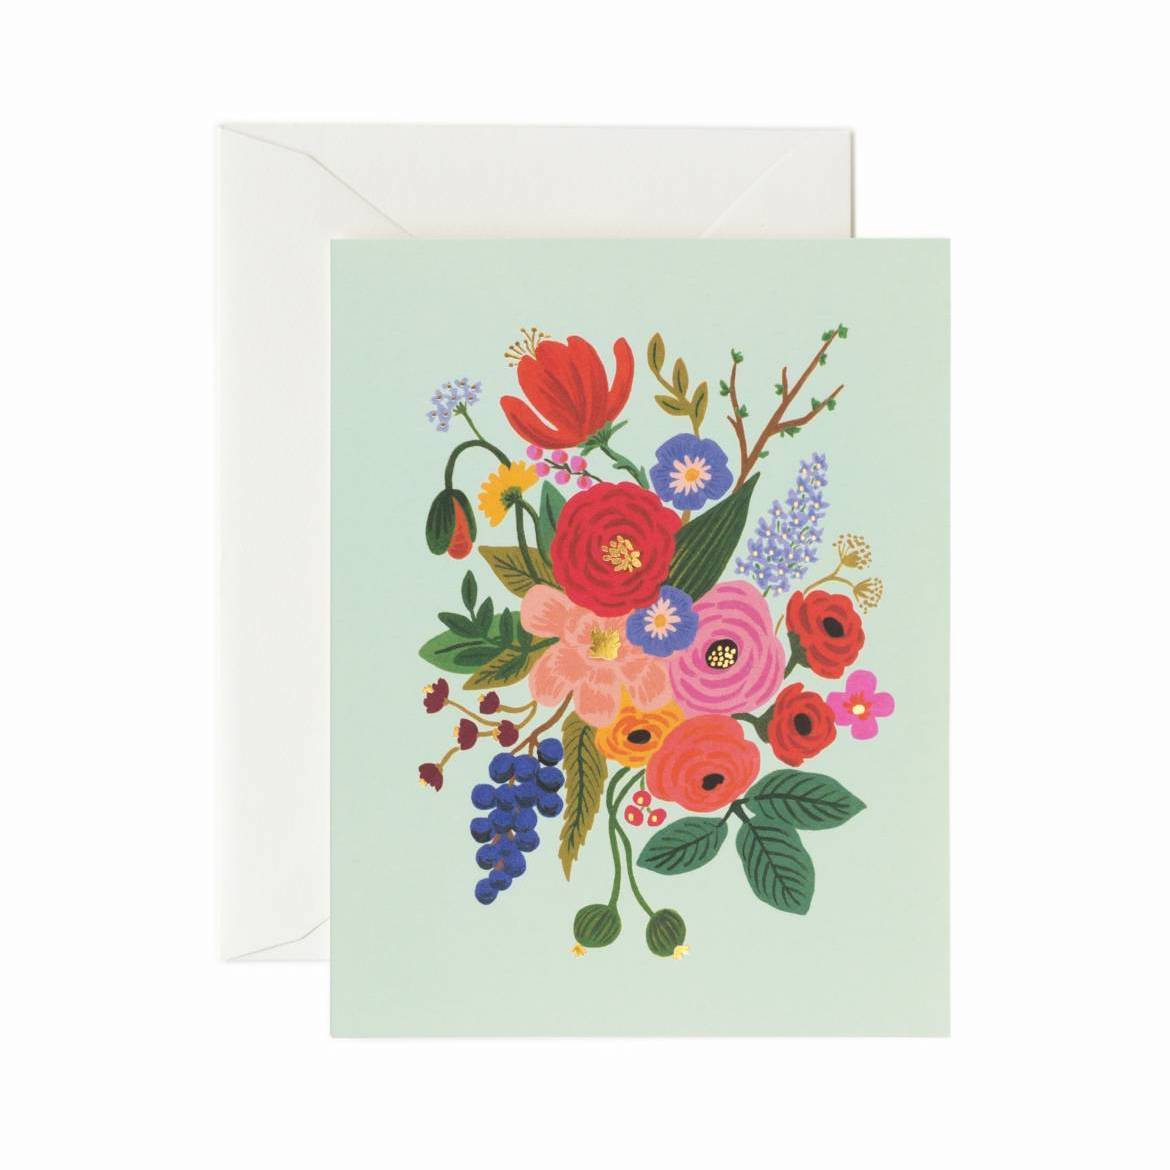 Garden Party Card Set - Mint Card - Rifle Paper Co.